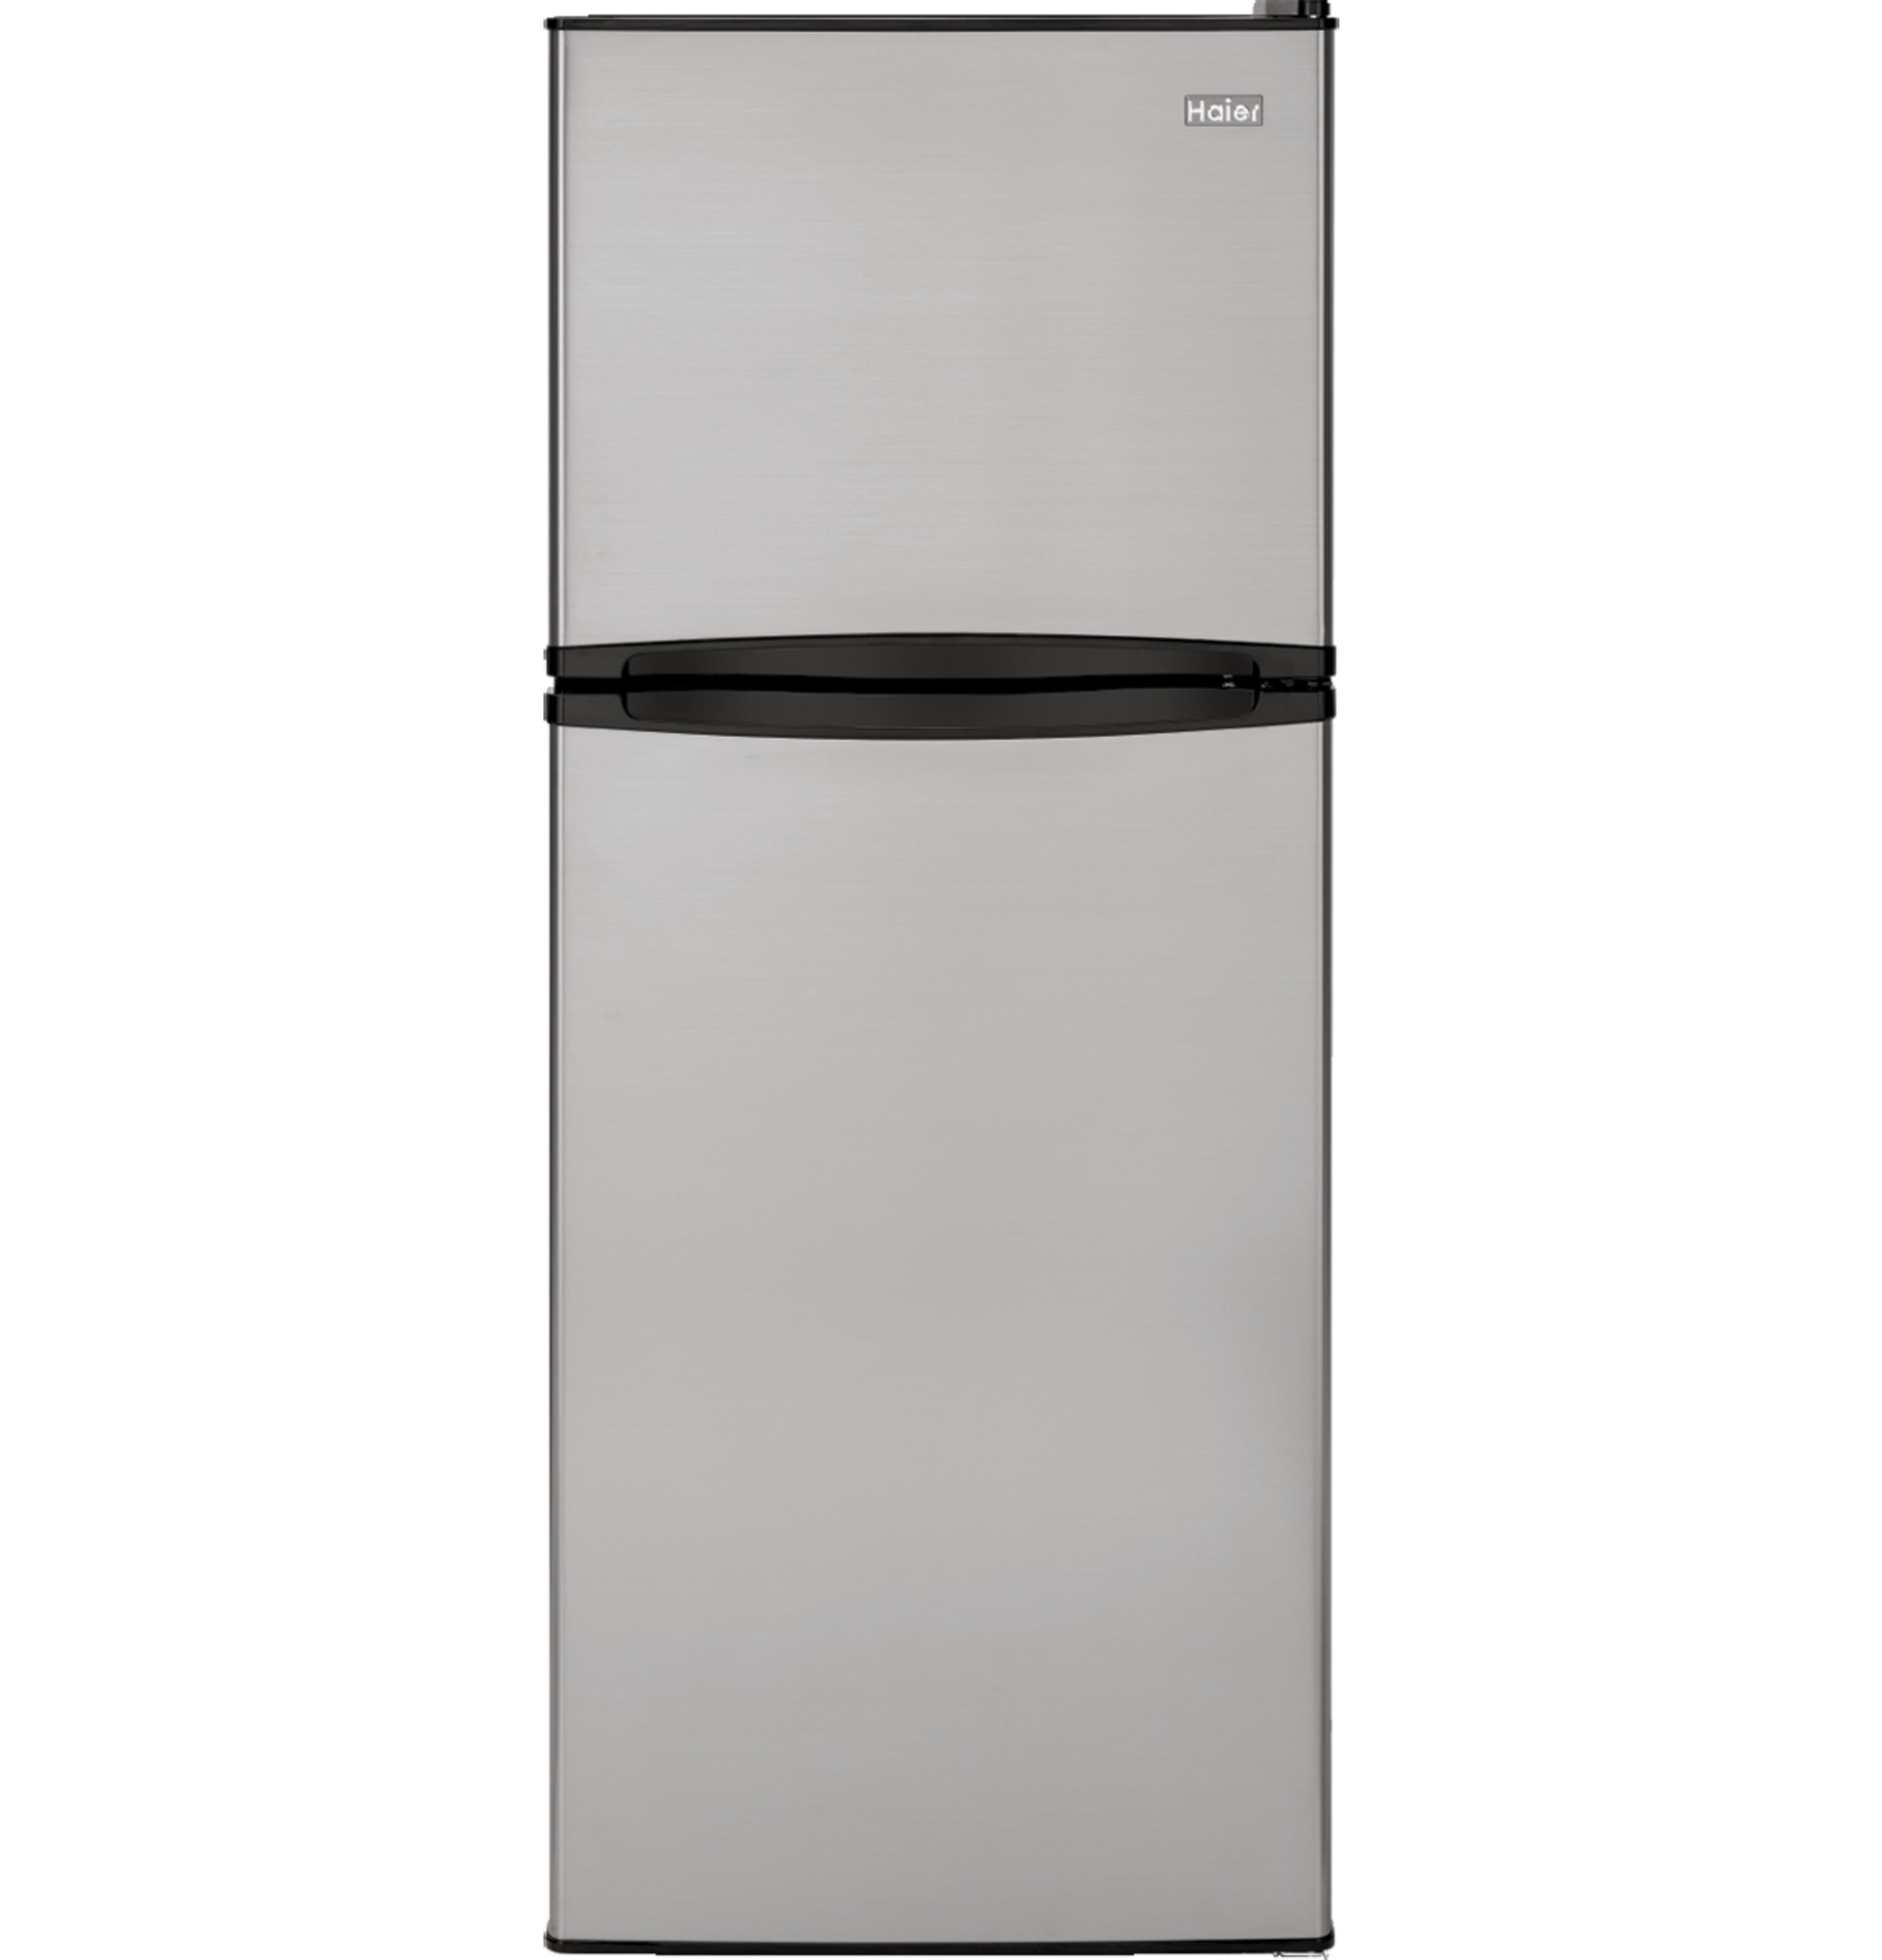 Ha10tg21ss 98 Cu Ft Top Freezer Refrigerator Haier Appliances Air Conditioner Wiring Diagram Stainless Un Installed Free Standing